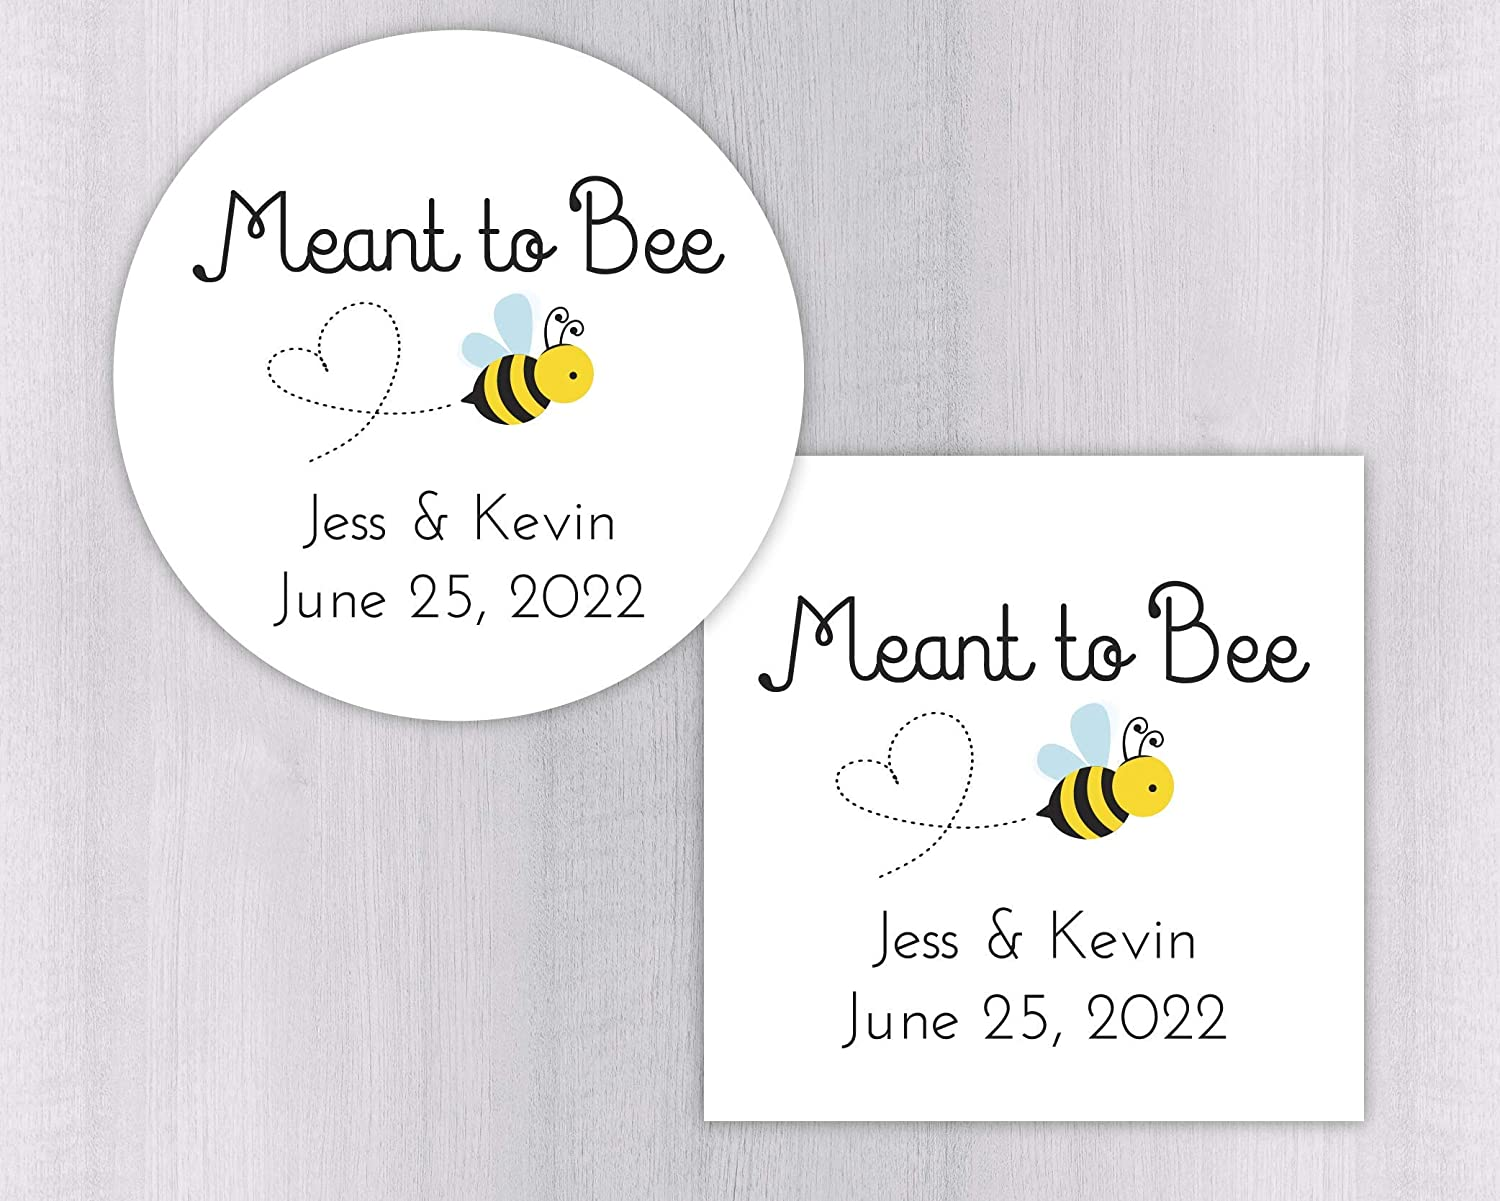 Meant to bee wedding favor stickers honey jar stickers honey jar labels 277 wh